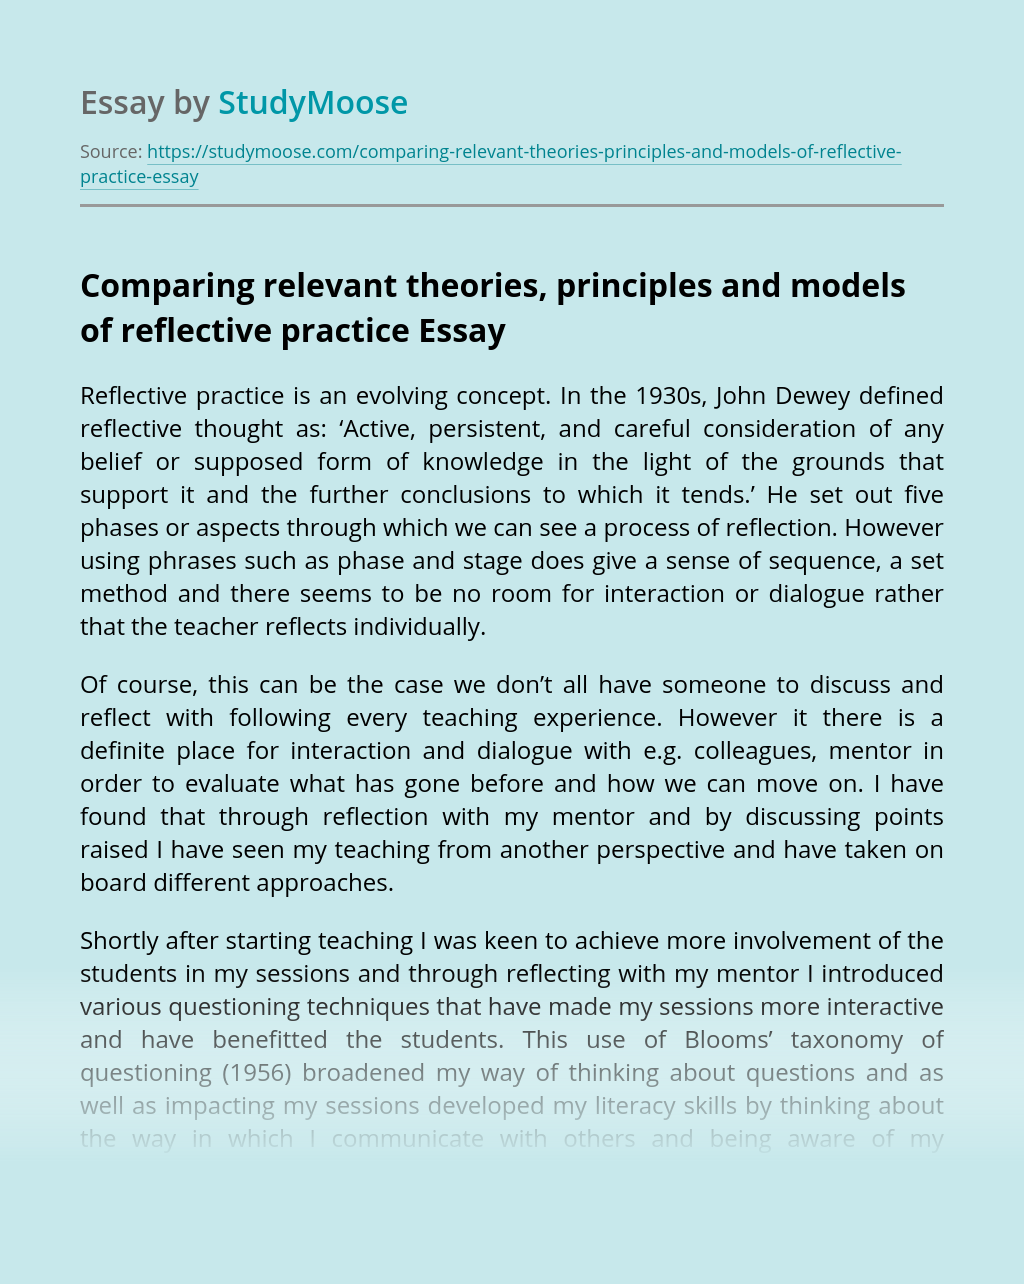 Comparing relevant theories, principles and models of reflective practice